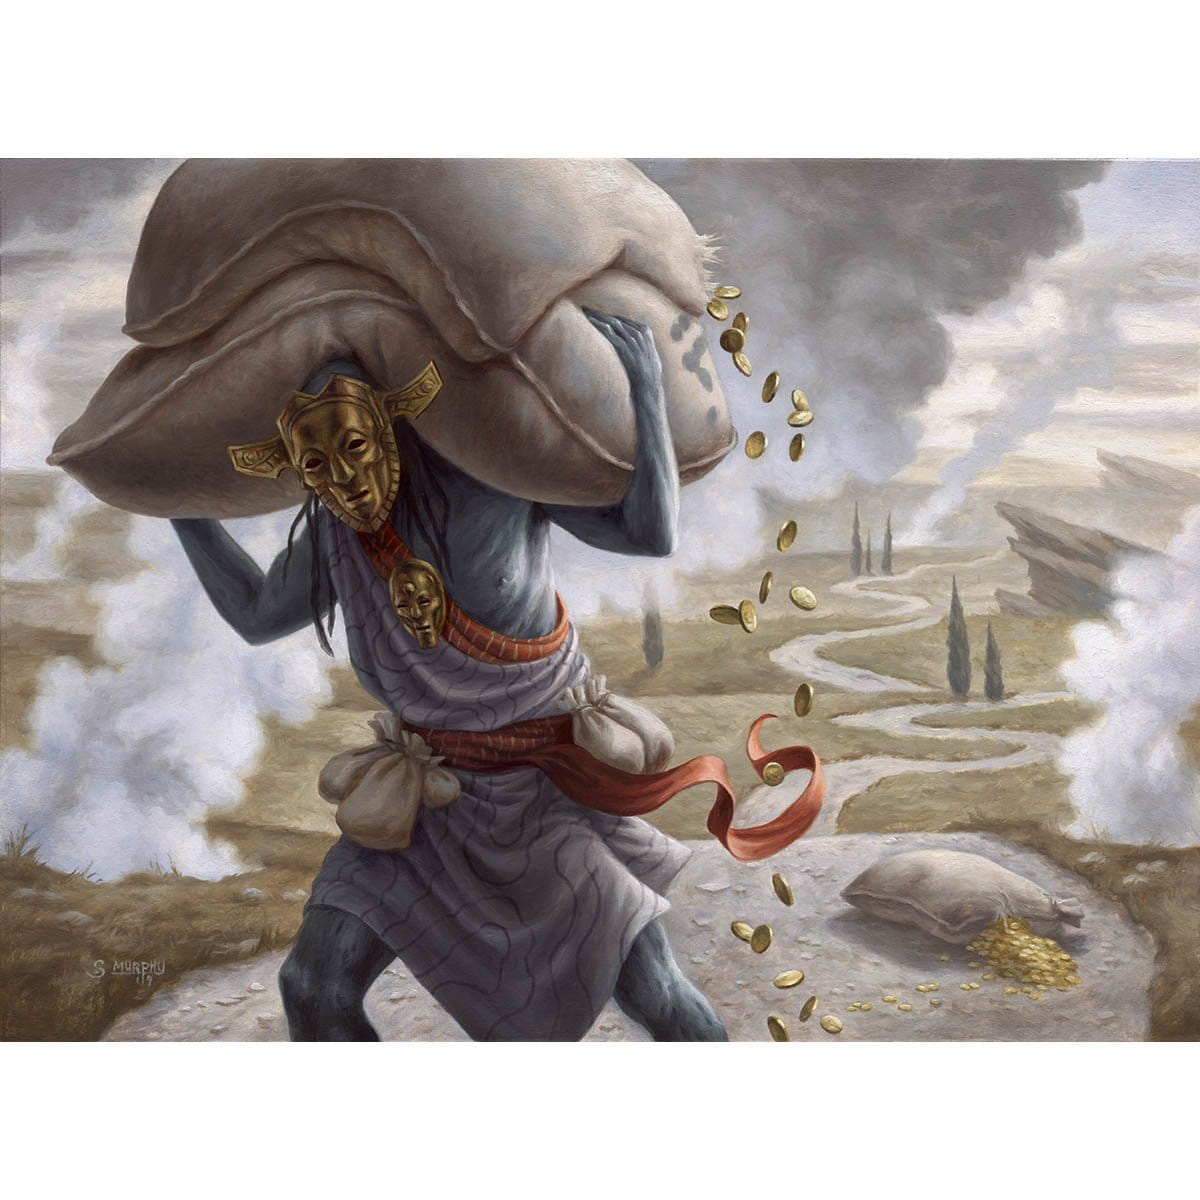 Gray Merchant of Asphodel Print - Print - Original Magic Art - Accessories for Magic the Gathering and other card games